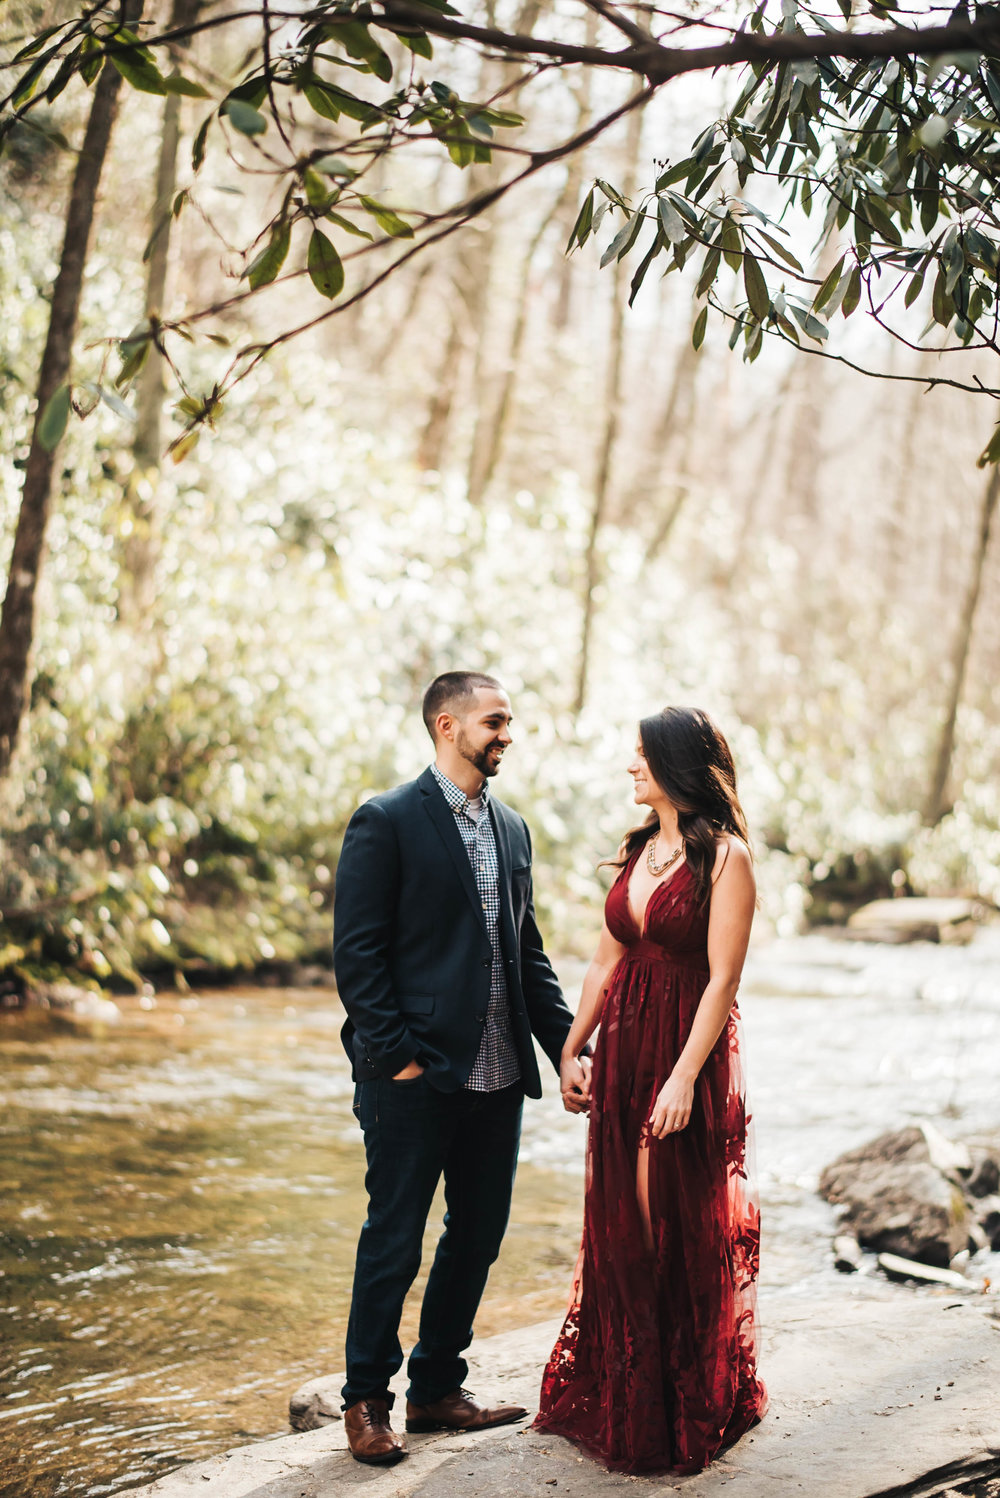 atlanta georgia blue ridge mountains asheville north carolina waterfall portland oregon california engagement wedding nontraditional photographer-63.jpg